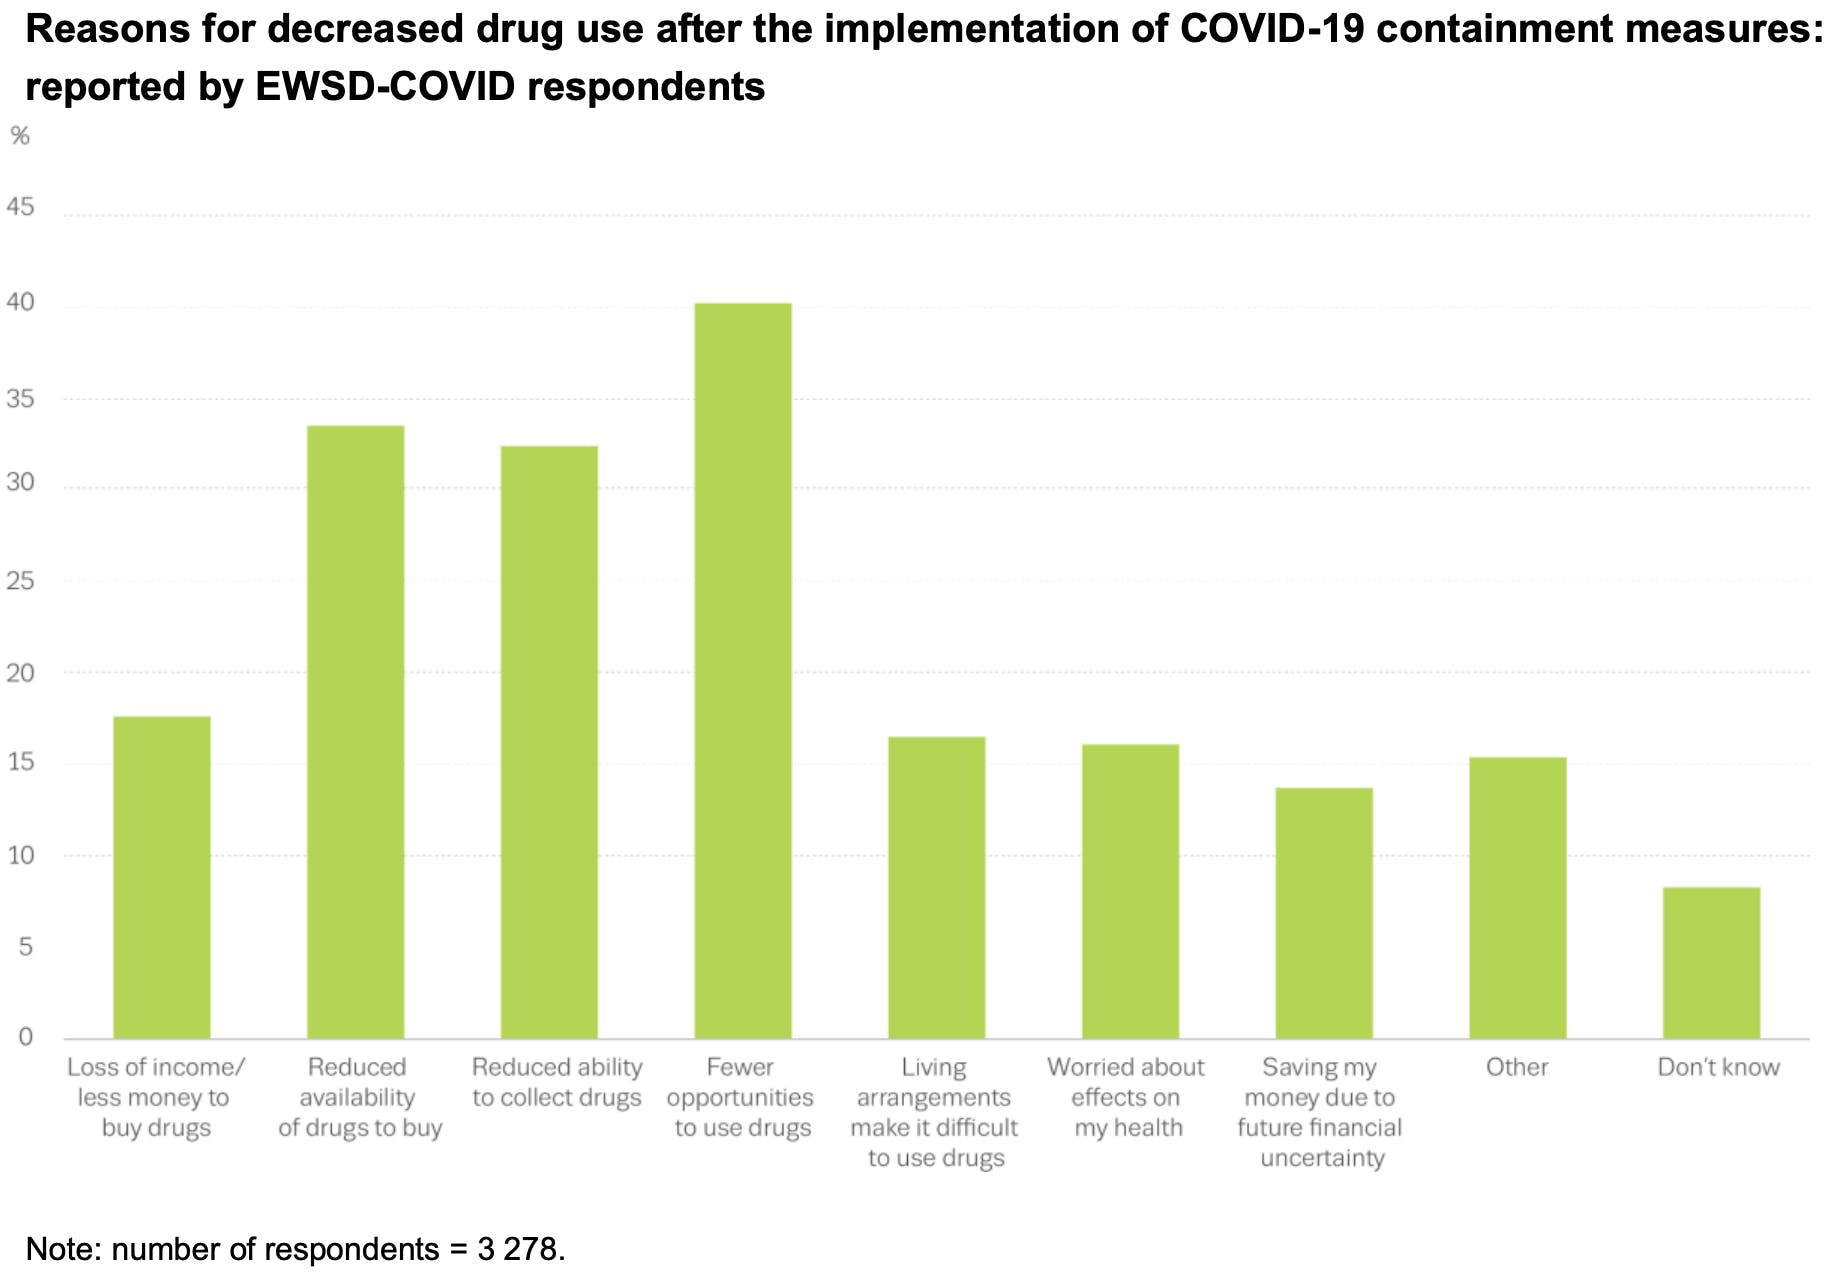 A chart showing reasons for decreased drug use in Europe during COVID-19, with reduced access to settings where drugs are used being most common